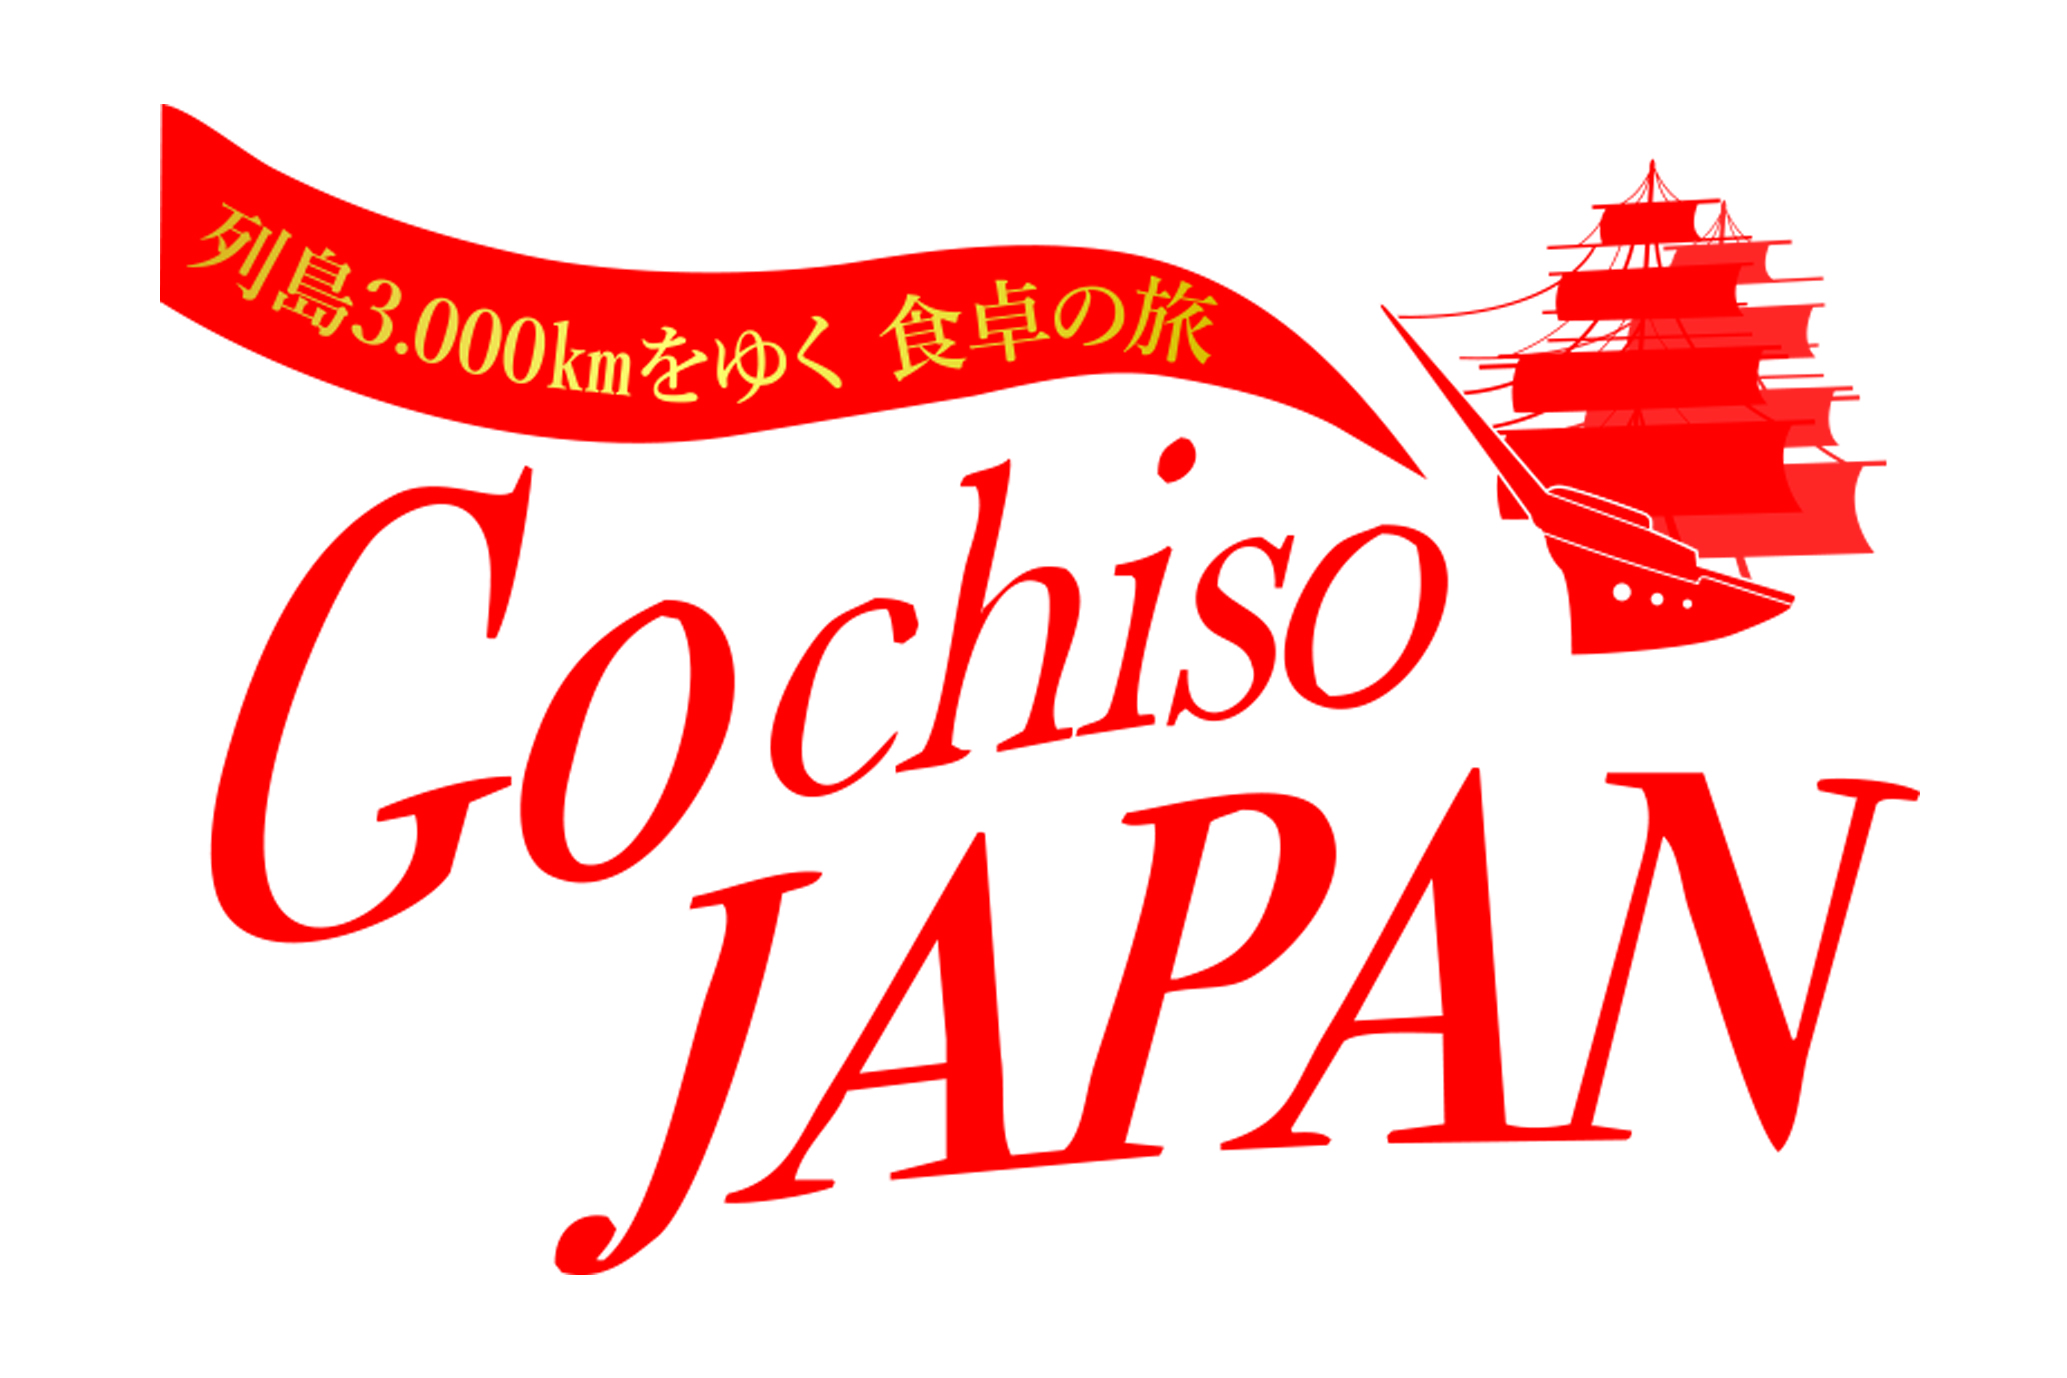 世界の海援隊ONLINE SHOP「Gochiso JAPAN」